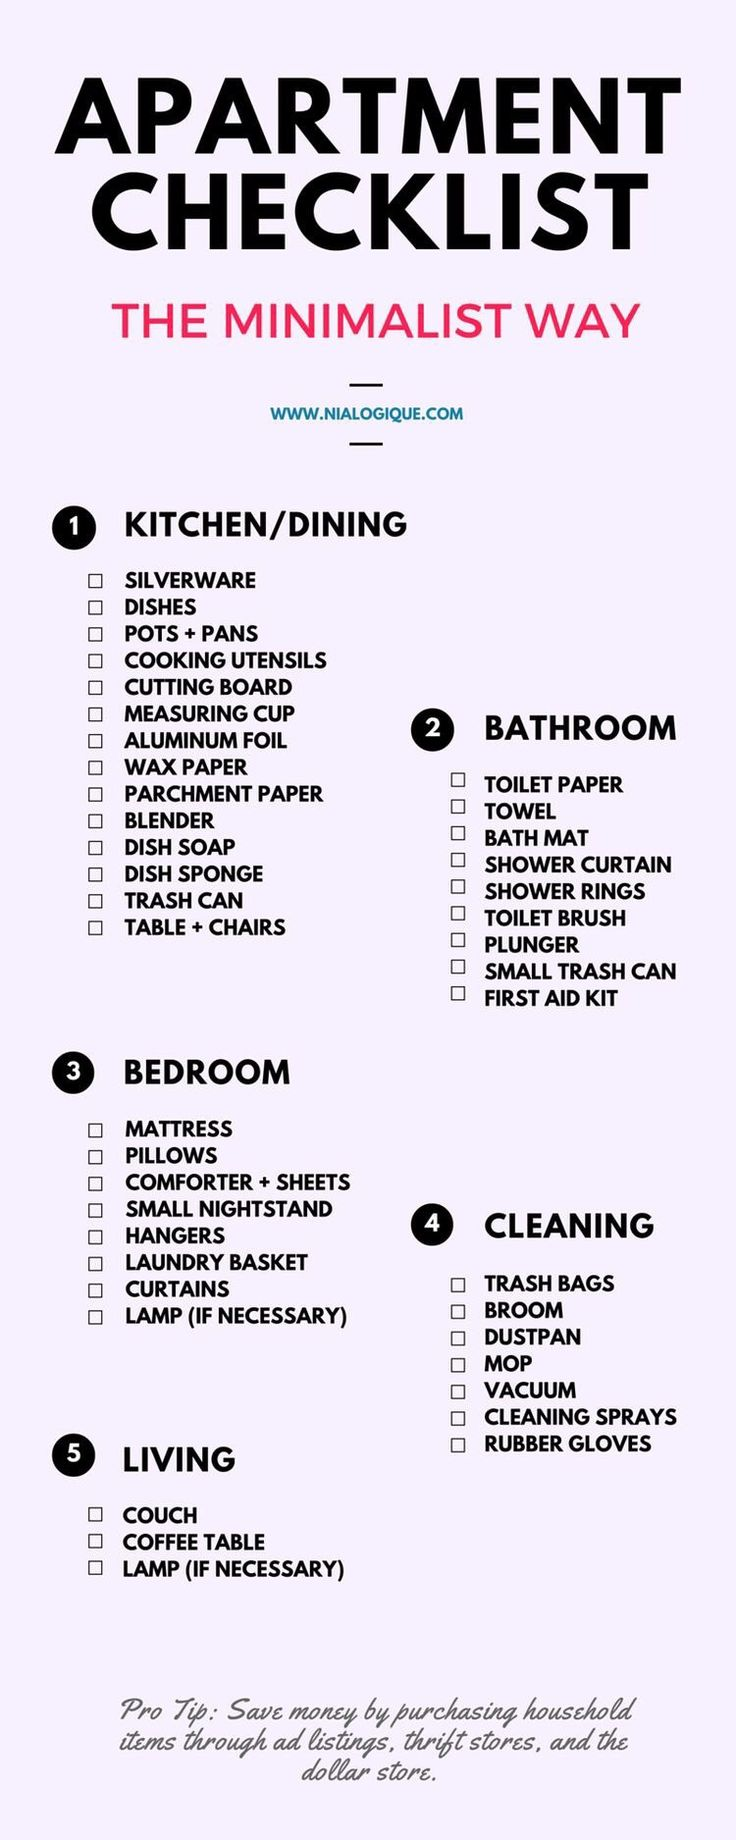 41 best Apartment Orgnization images by Eleese Lark on Pinterest ...